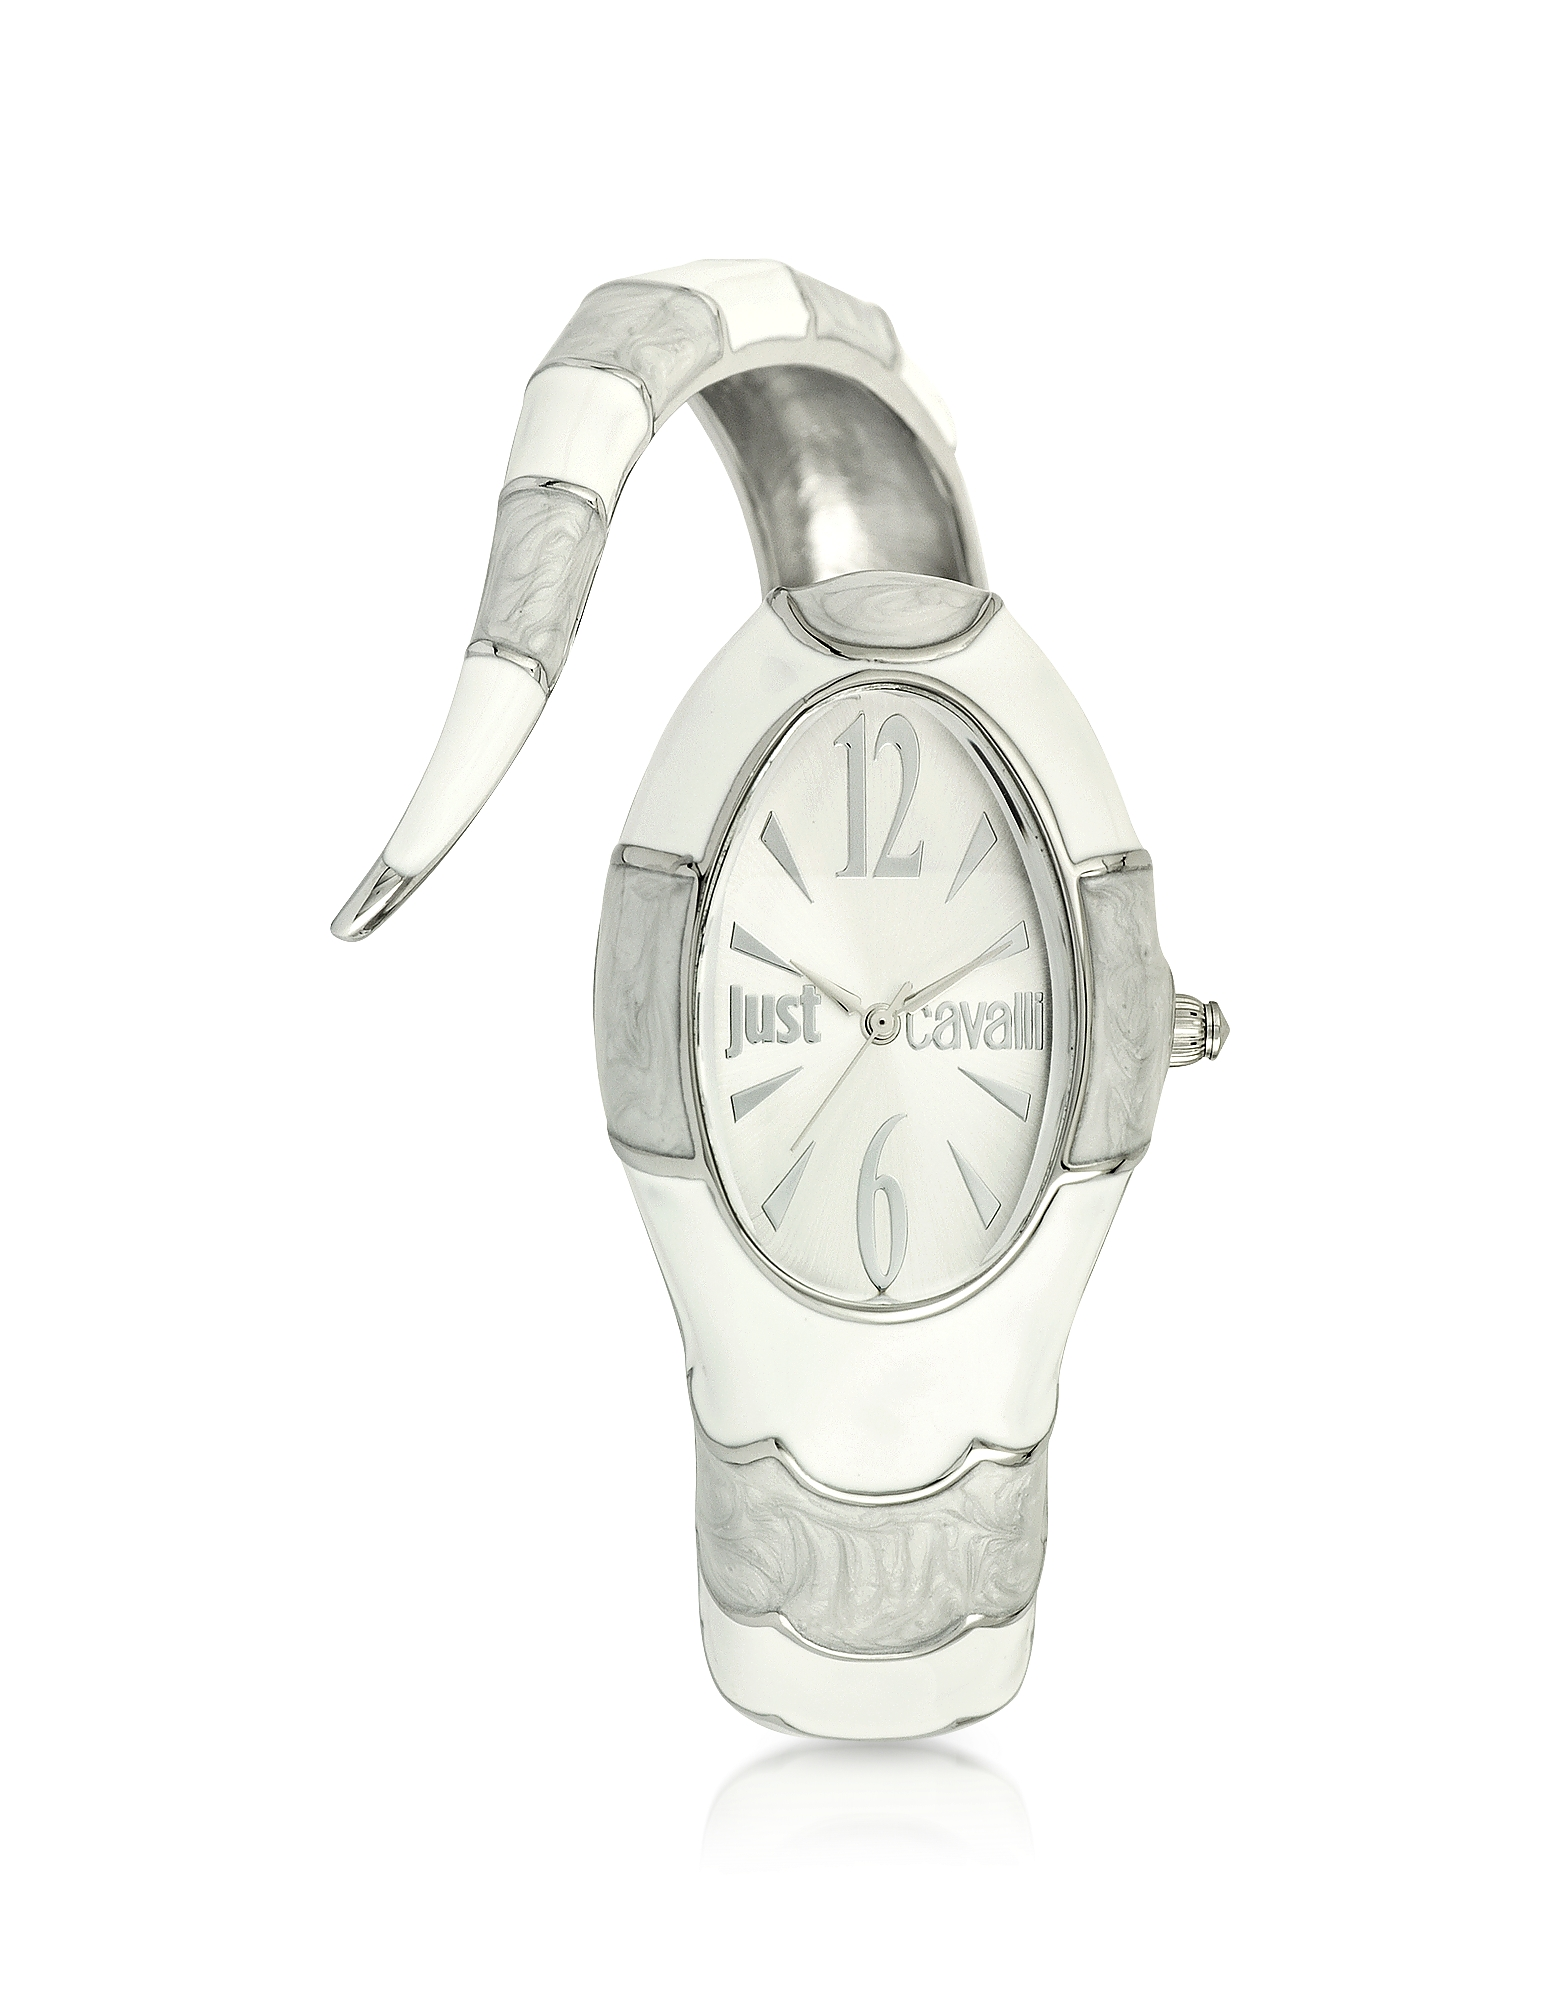 Just Cavalli Women's Watches, Poison Jc 3H Silver Dial Stainless Steel Women's Watch